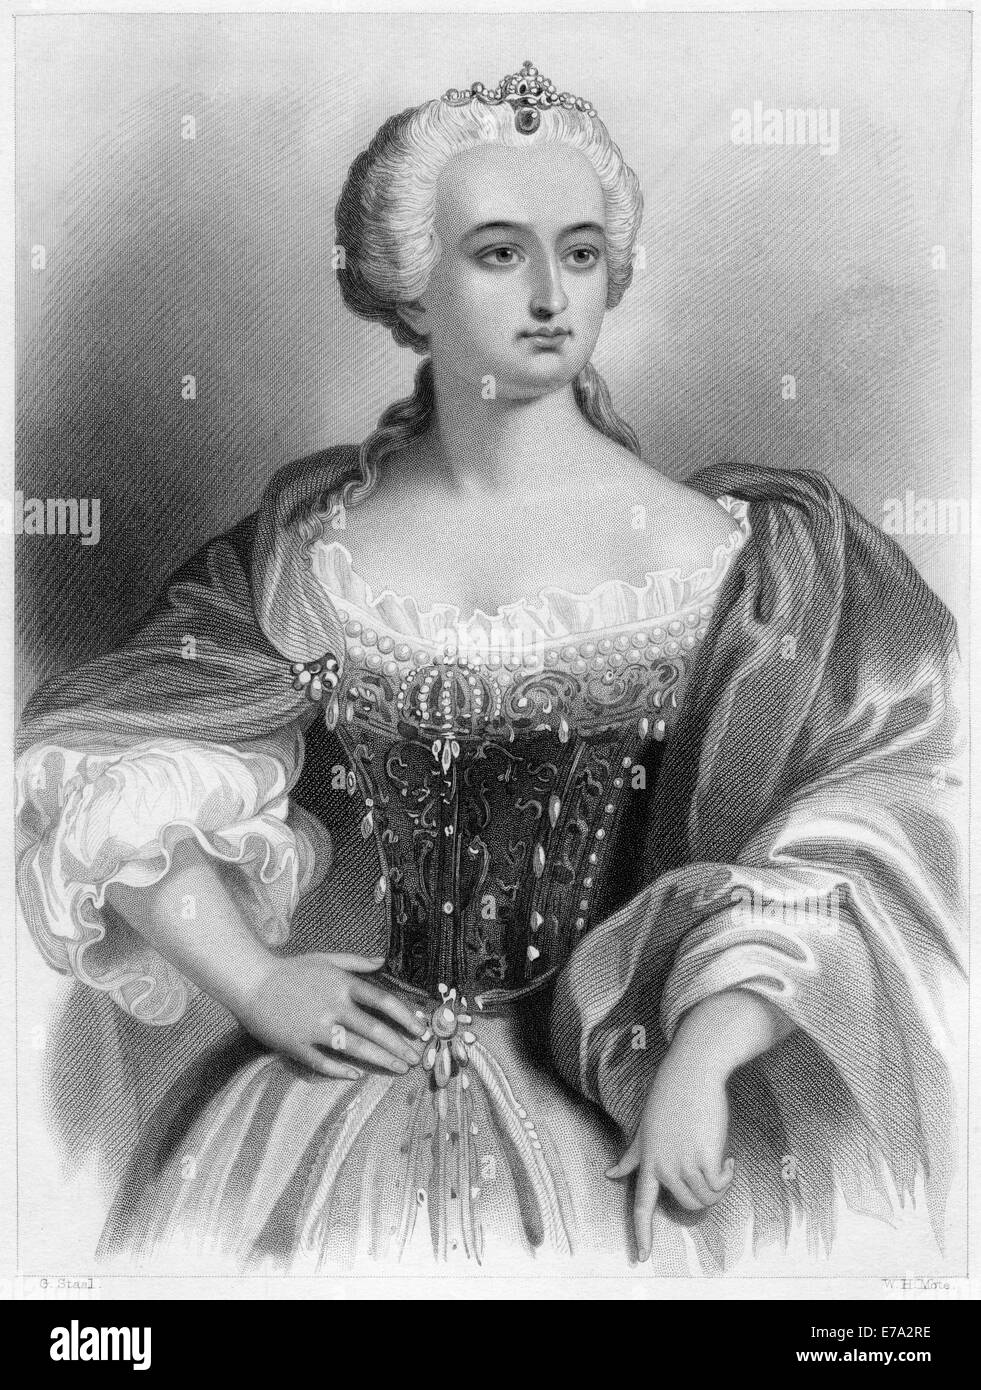 Maria Theresa (1717-1780), Archduchess of Austria, Queen of Hungary and Bohemia, Portrait - Stock Image